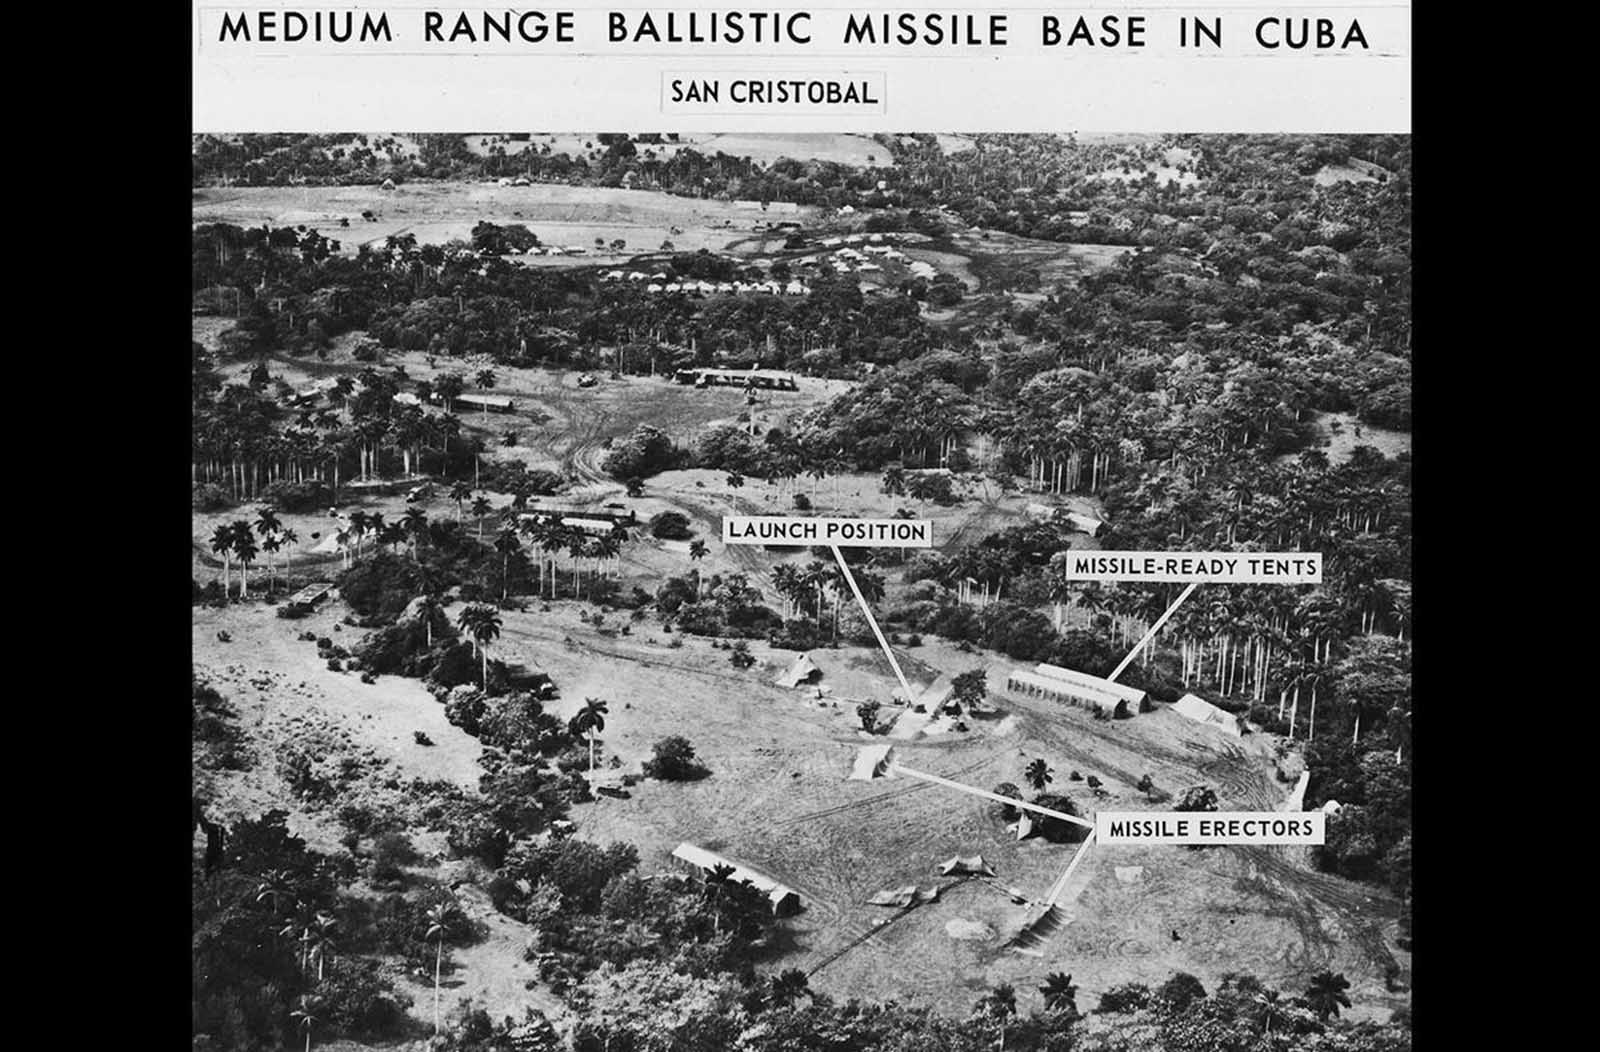 A spy photo of a medium range ballistic missile base in San Cristobal, Cuba, with labels detailing various parts of the base, displayed October of 1962.